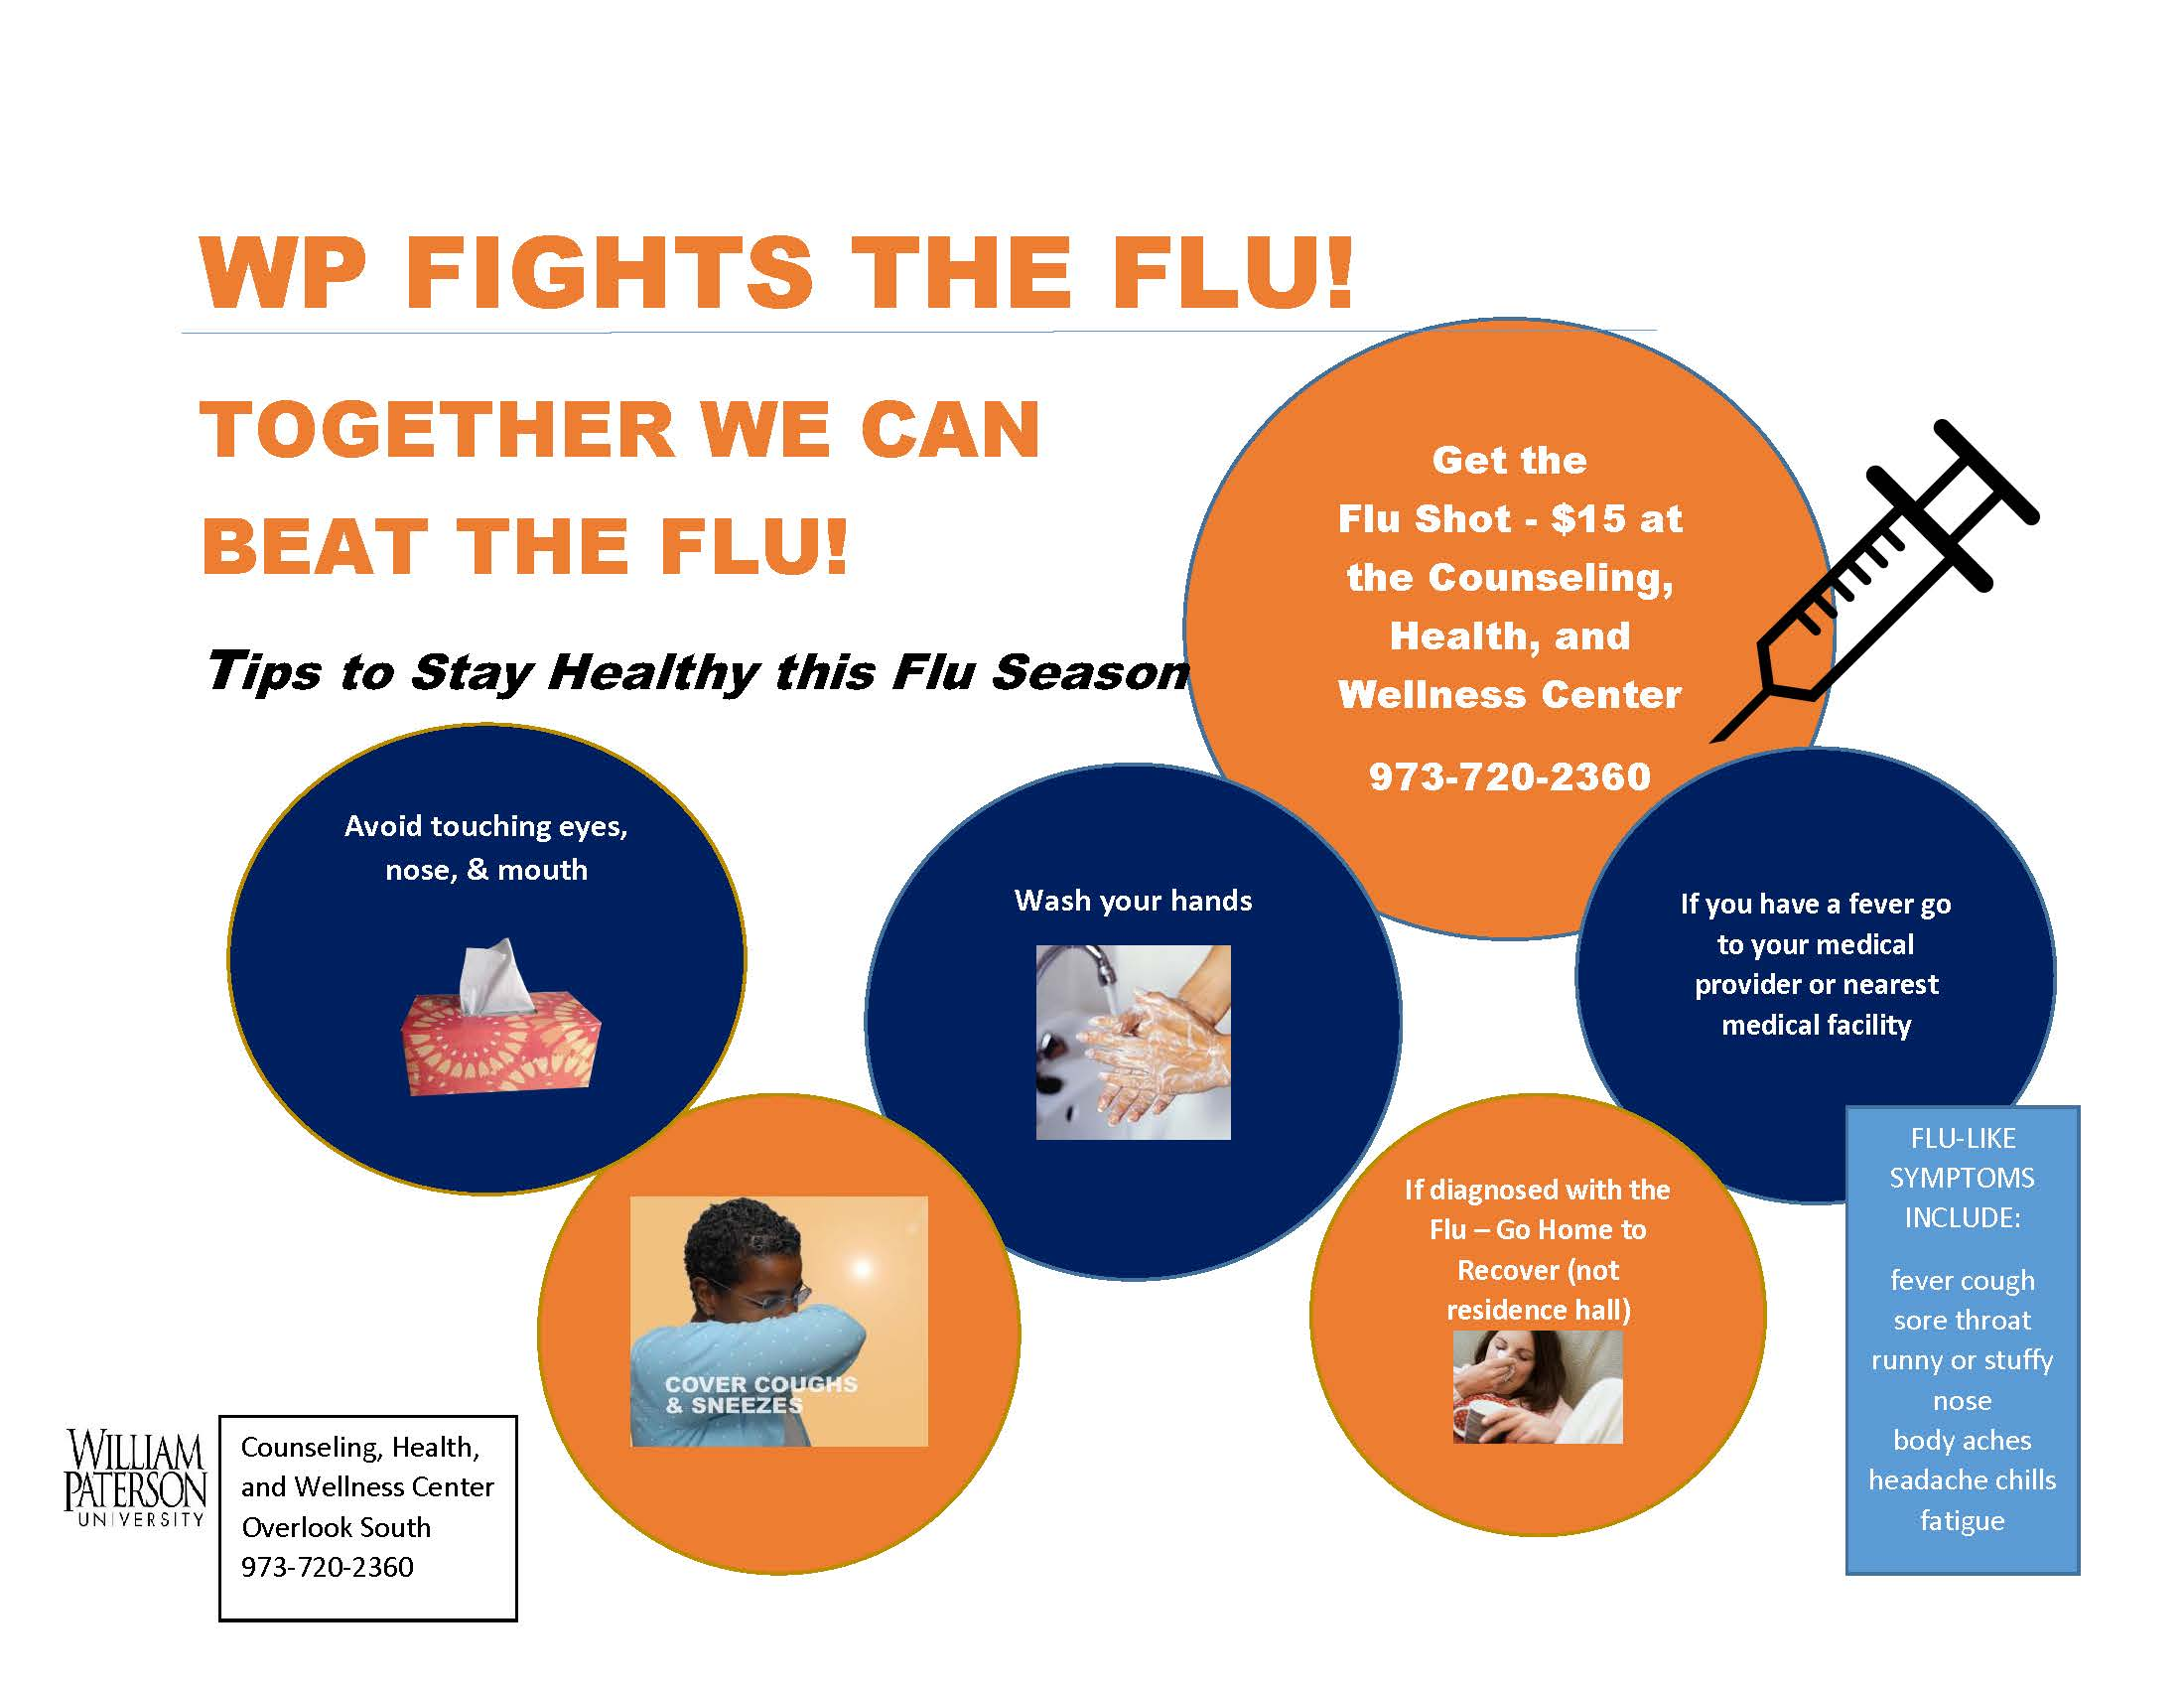 PROTECT YOURSELF from Flu SP18